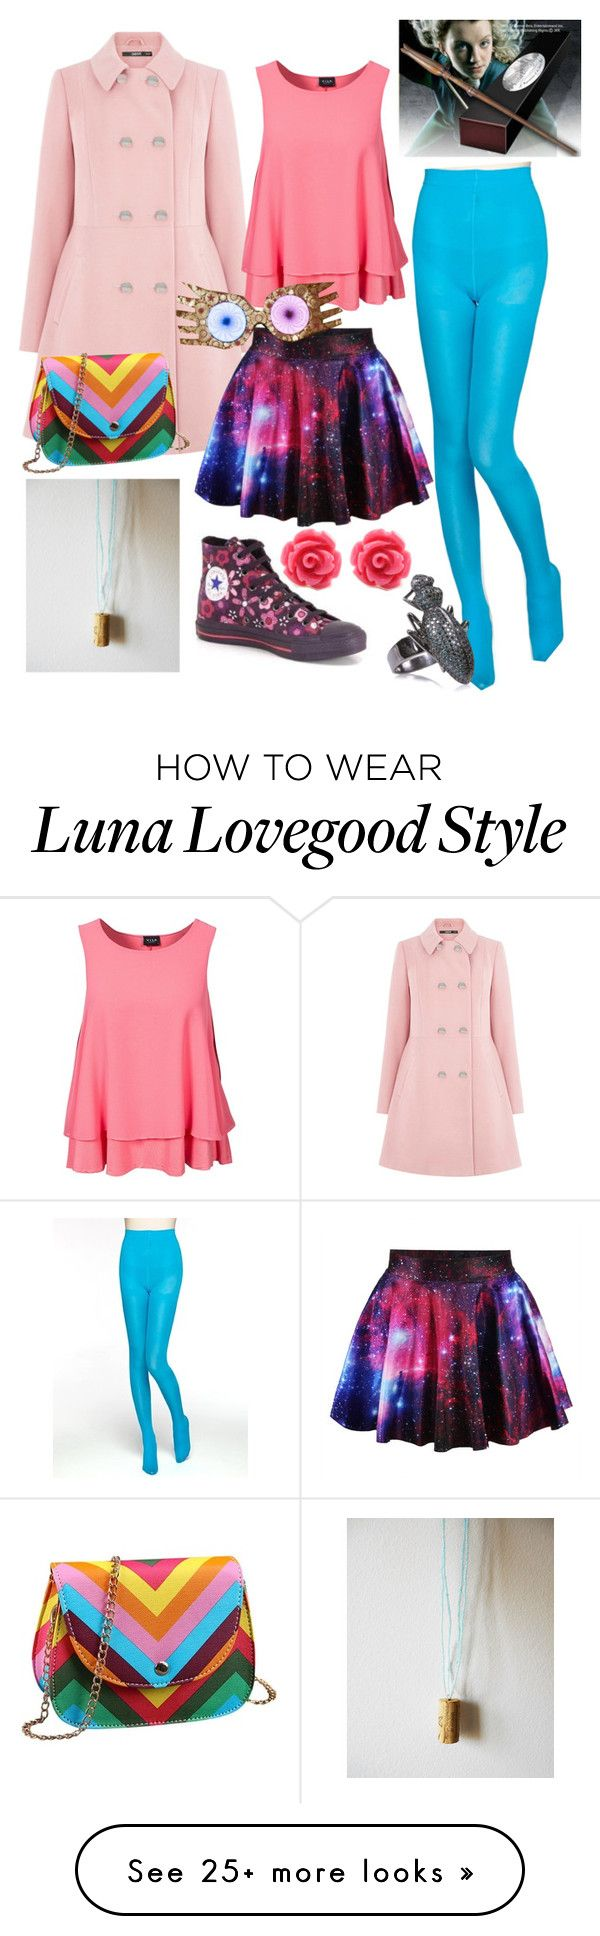 """""""Luna Lovegood"""" by number-3 on Polyvore featuring Oasis, VILA, Converse, Luna, Ileana Makri, women's clothing, women, female, woman and misses"""